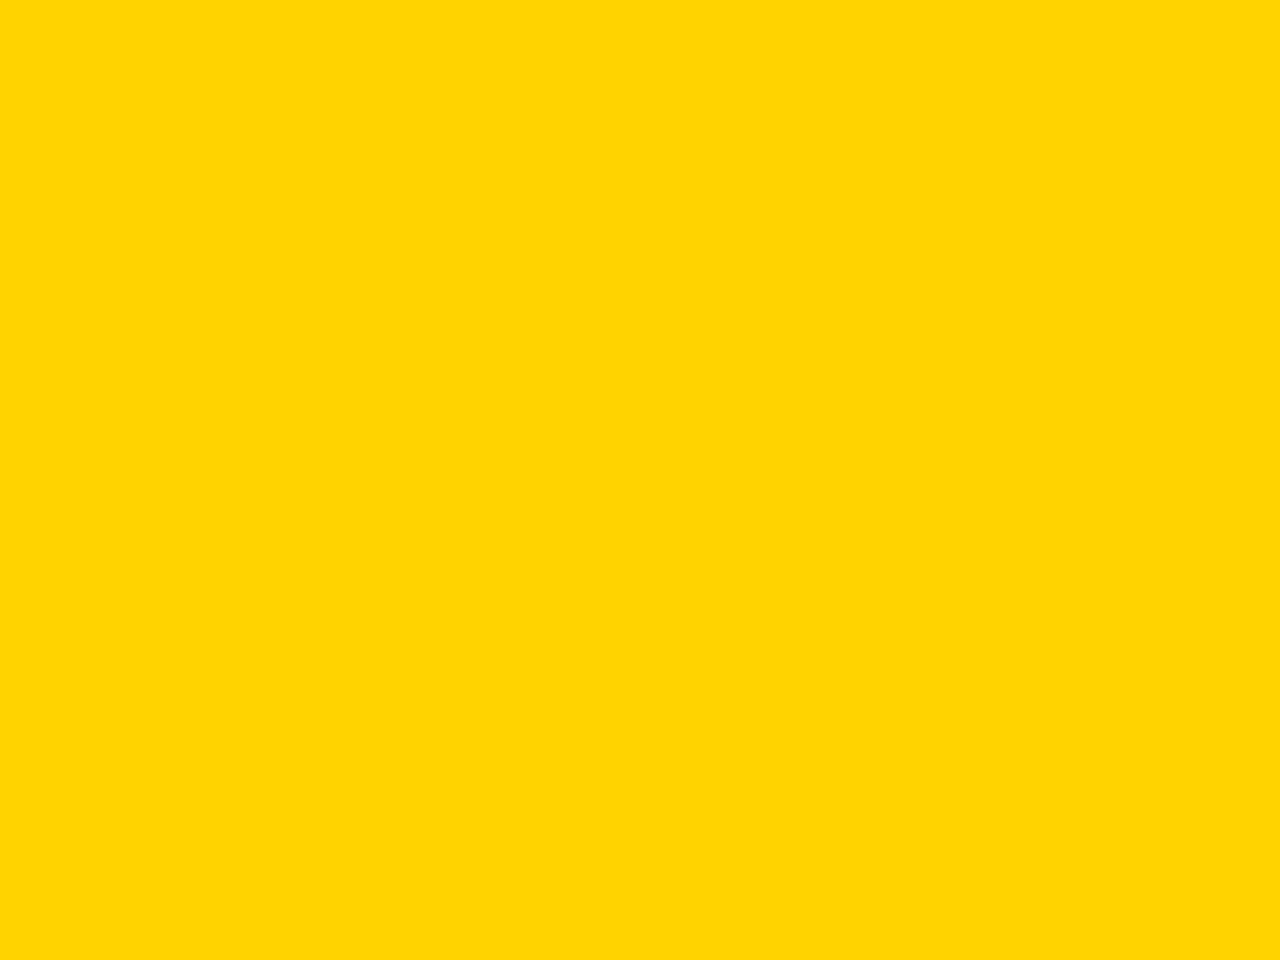 1280x960 Cyber Yellow Solid Color Background